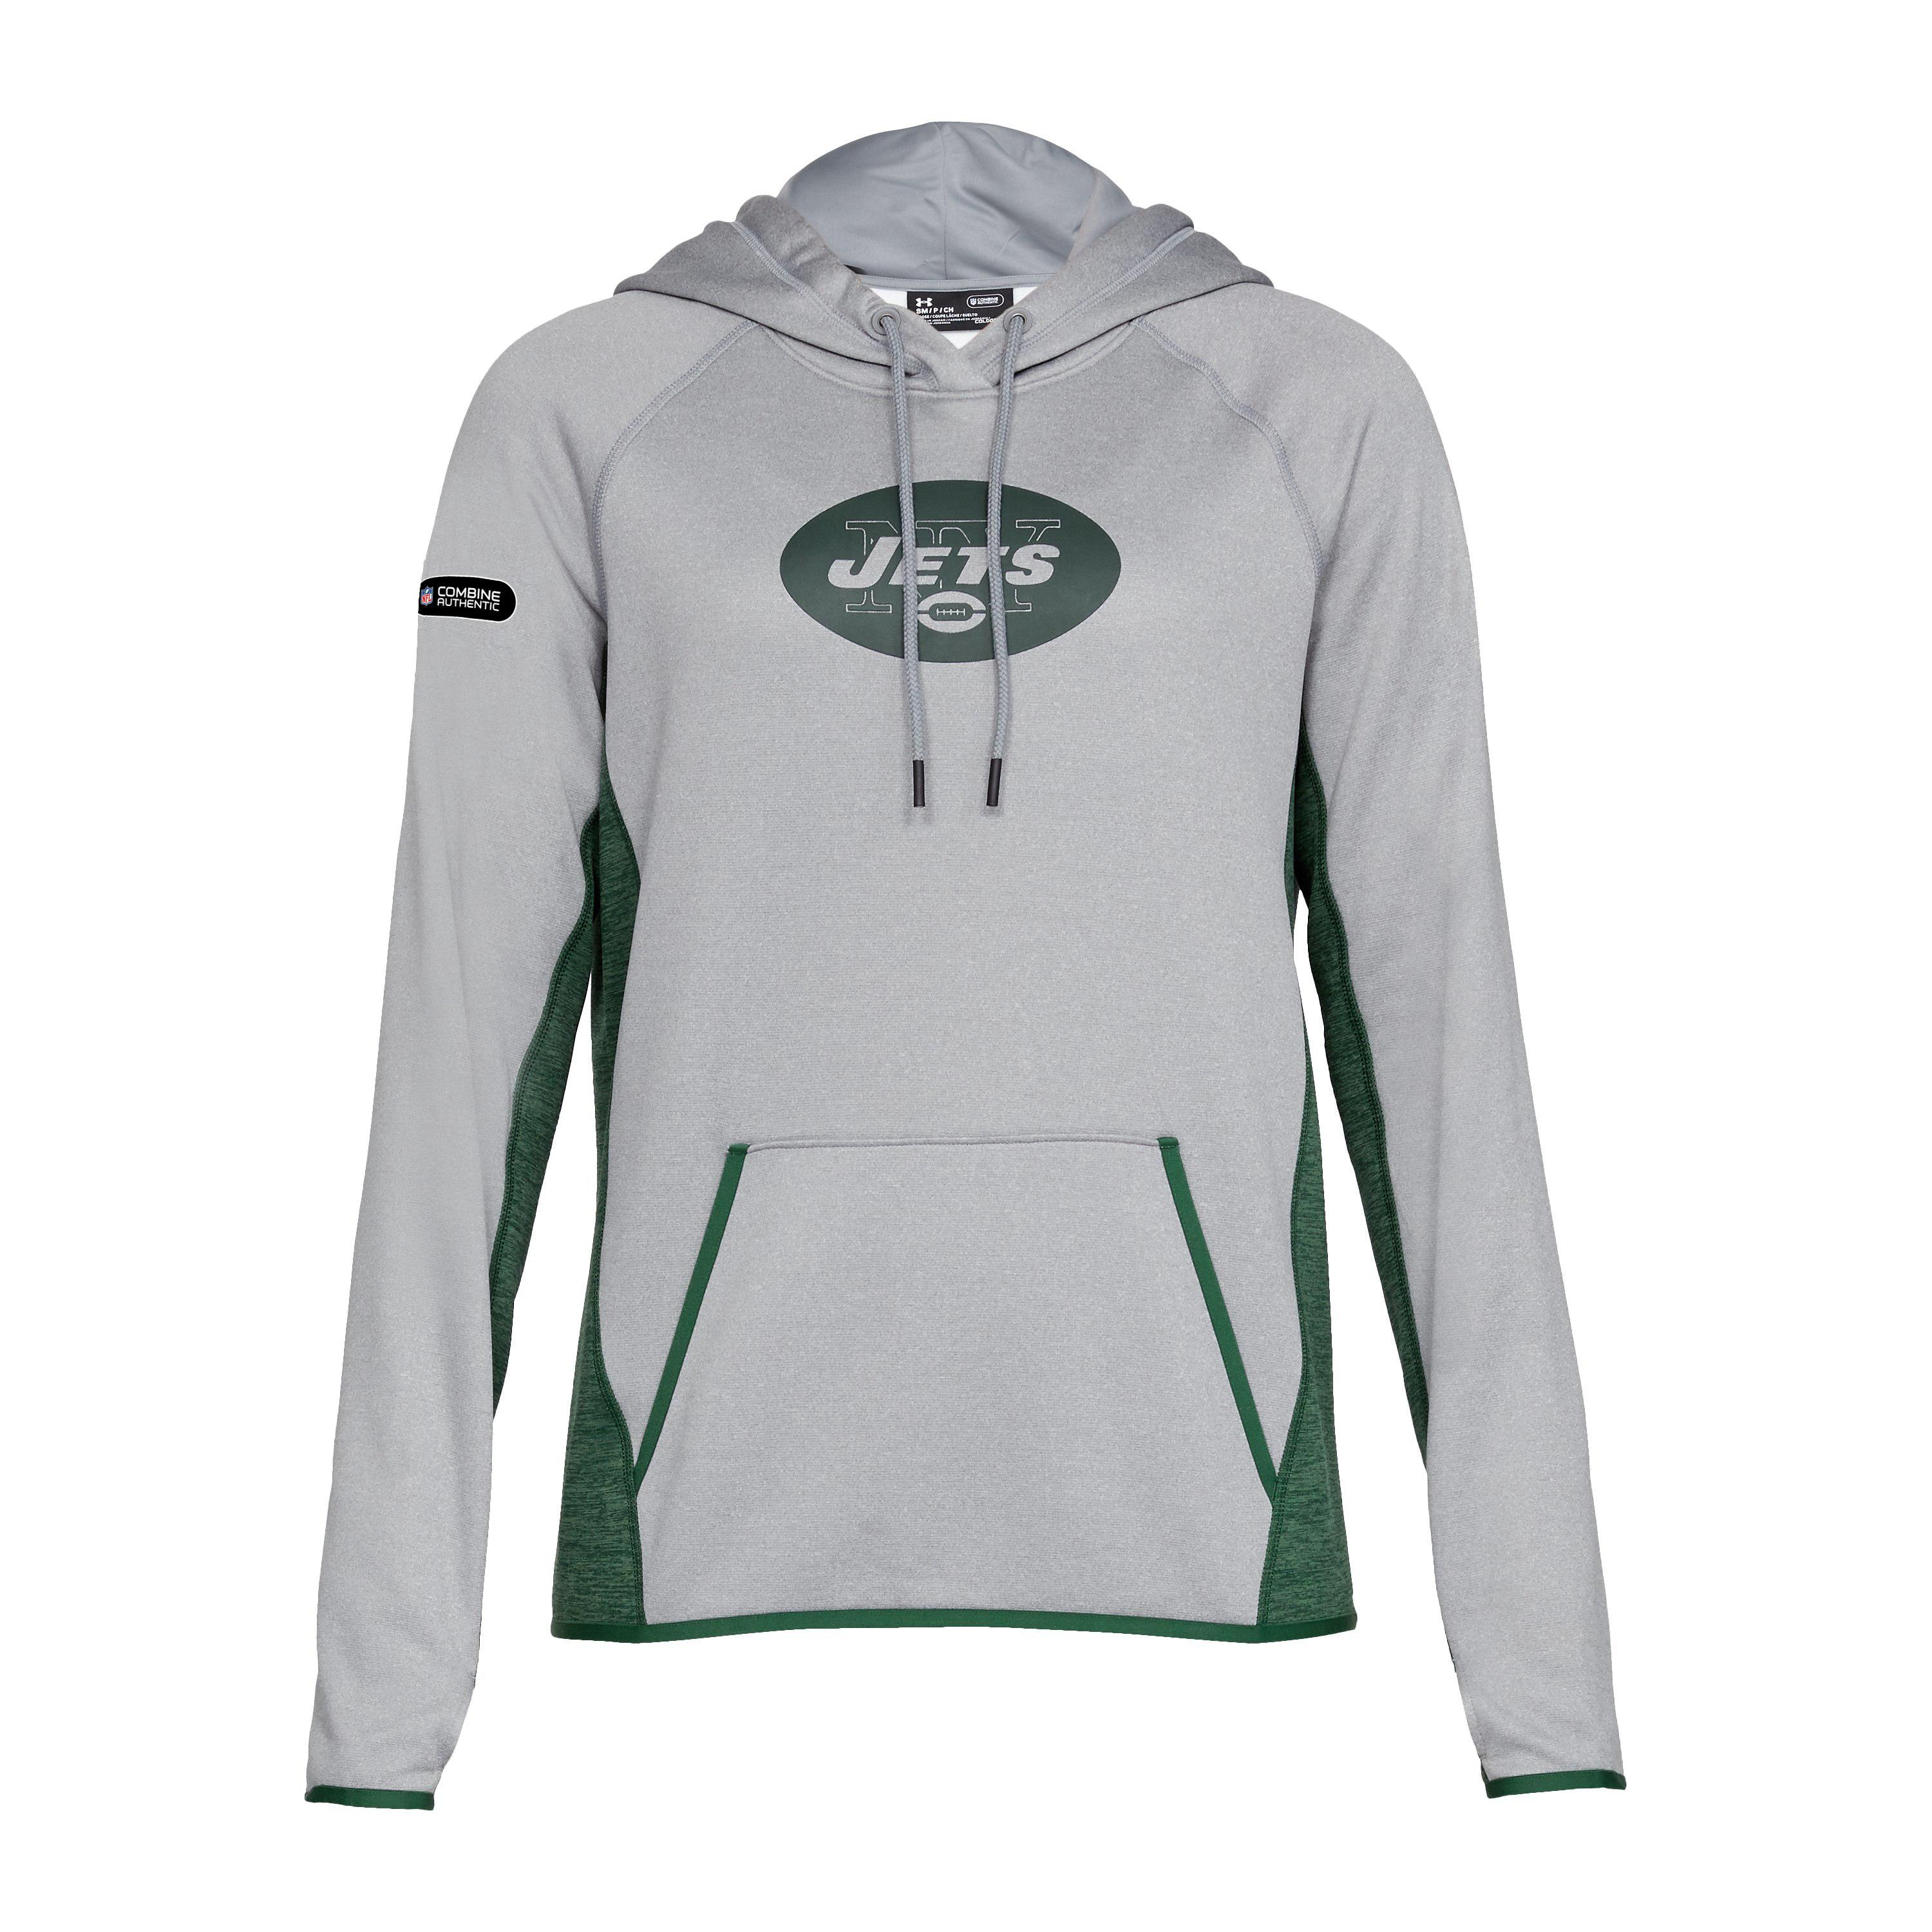 new arrival 0fdfe 808f5 Lyst - Under Armour Women's Nfl Combine Authentic Armour ...